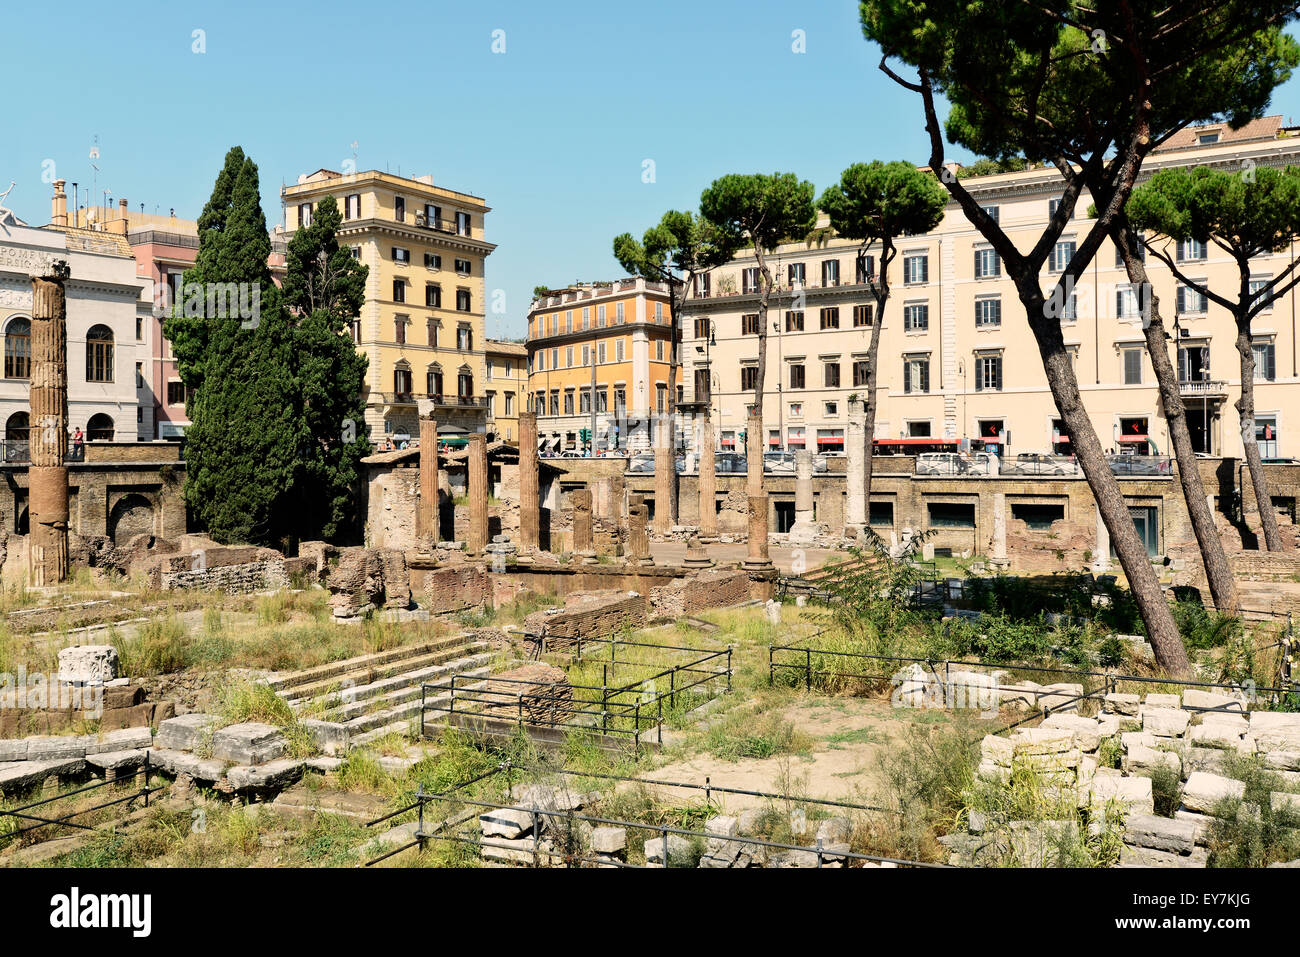 Largo di Torre Argentina is an important place in Rome,  few ruins of temples are there after the last attack. - Stock Image